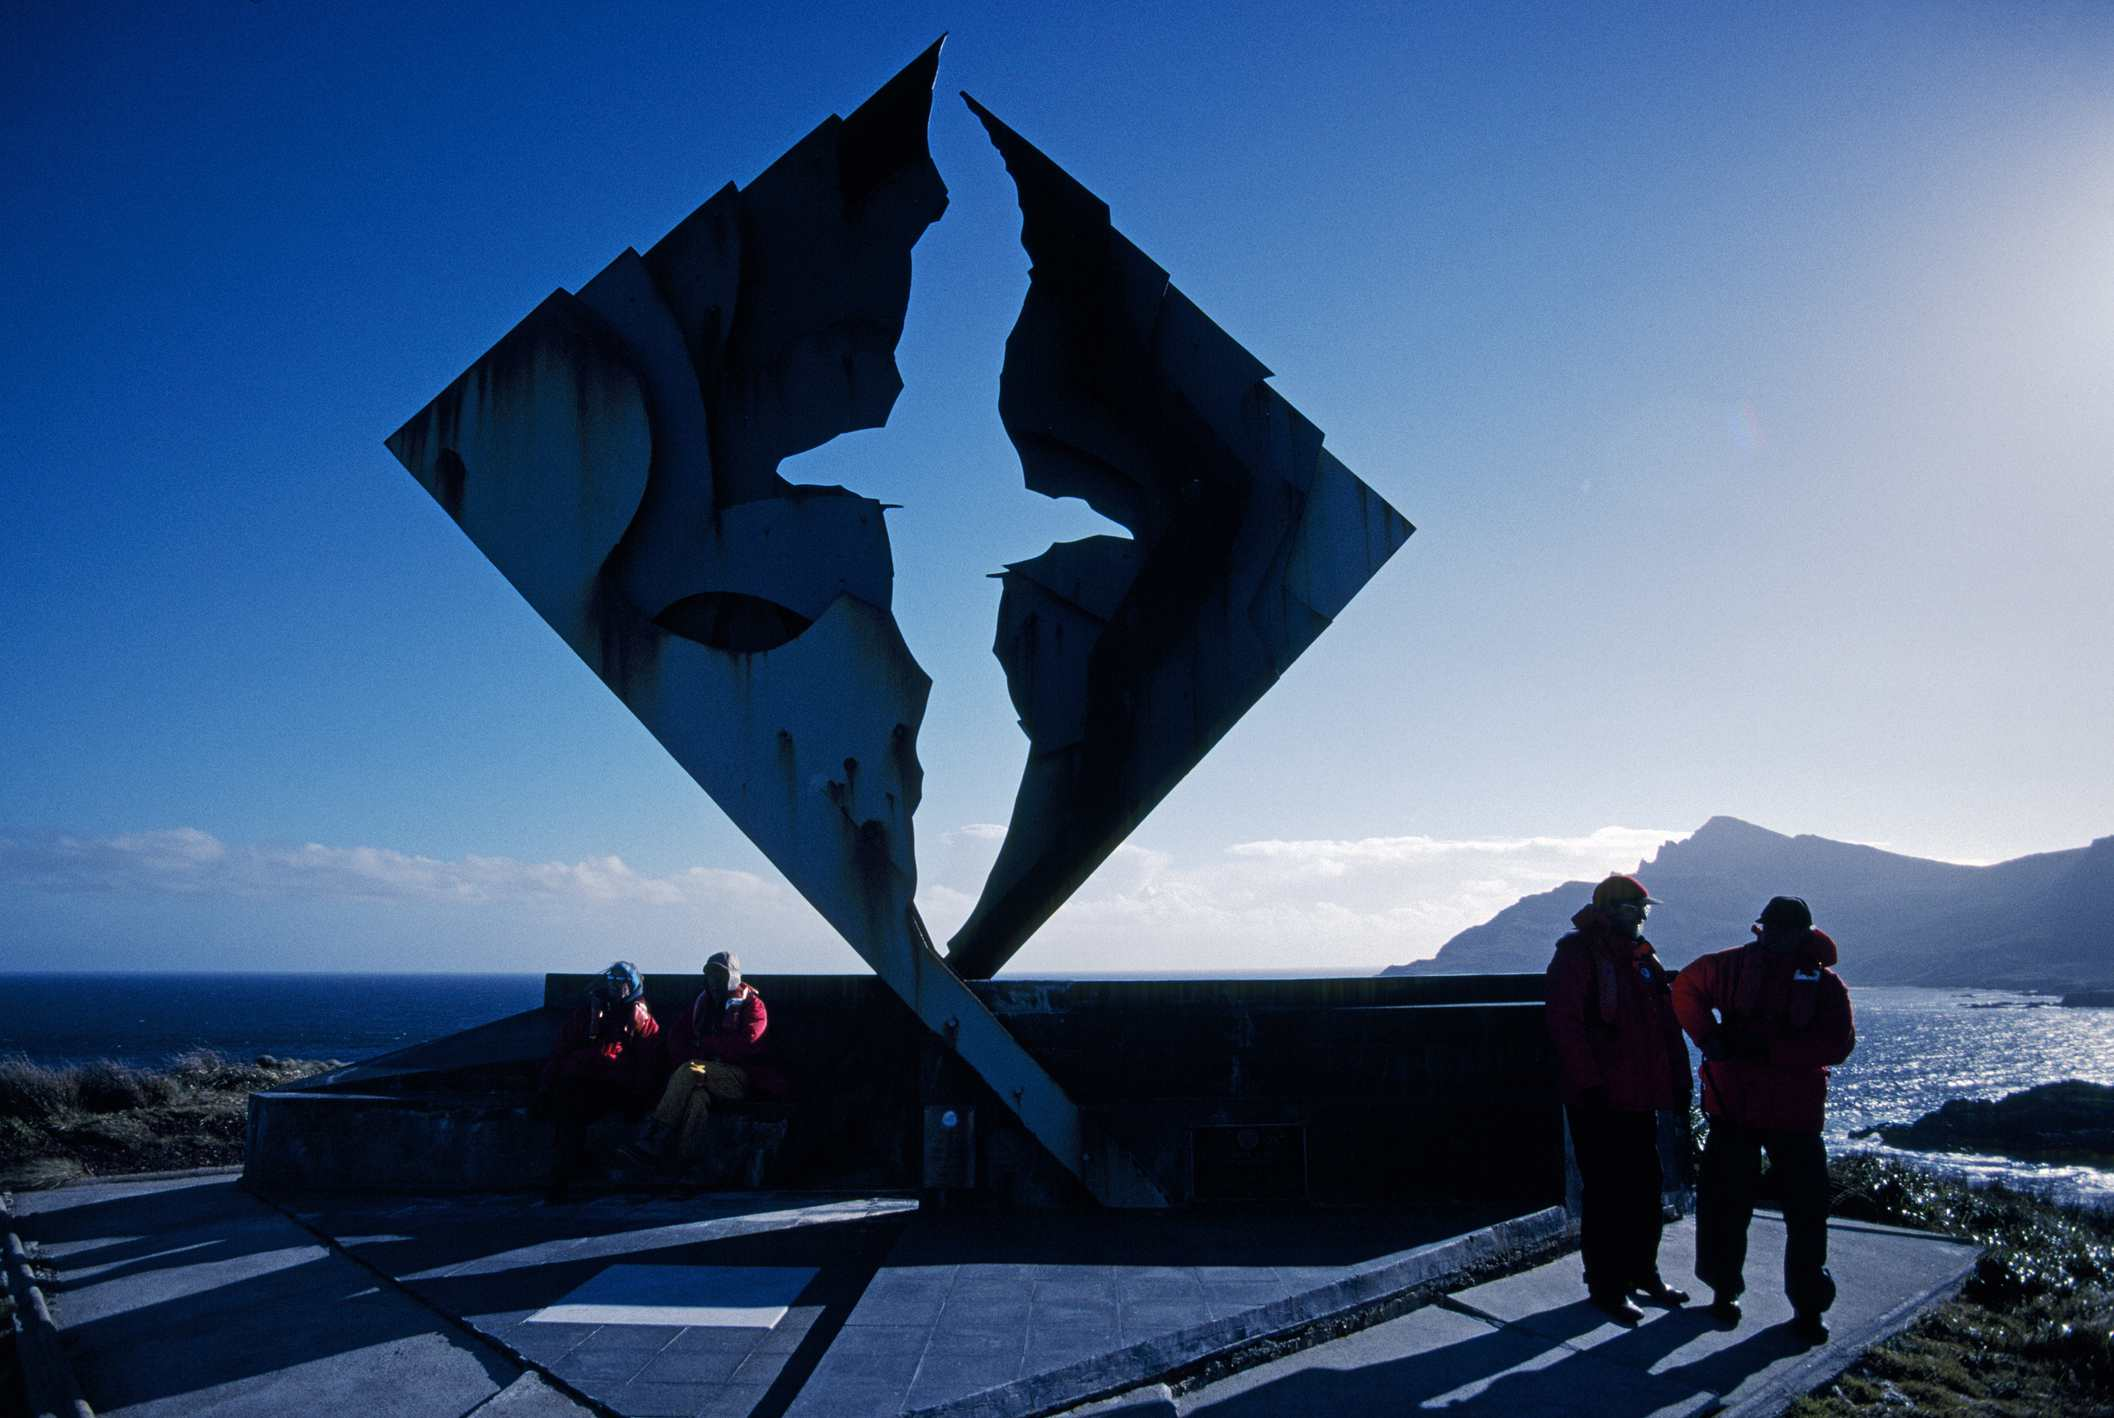 Chile, Woolaston Islands, Cape Horn. Cruise vessel tourists visiting Albatross memorial for lost mariners